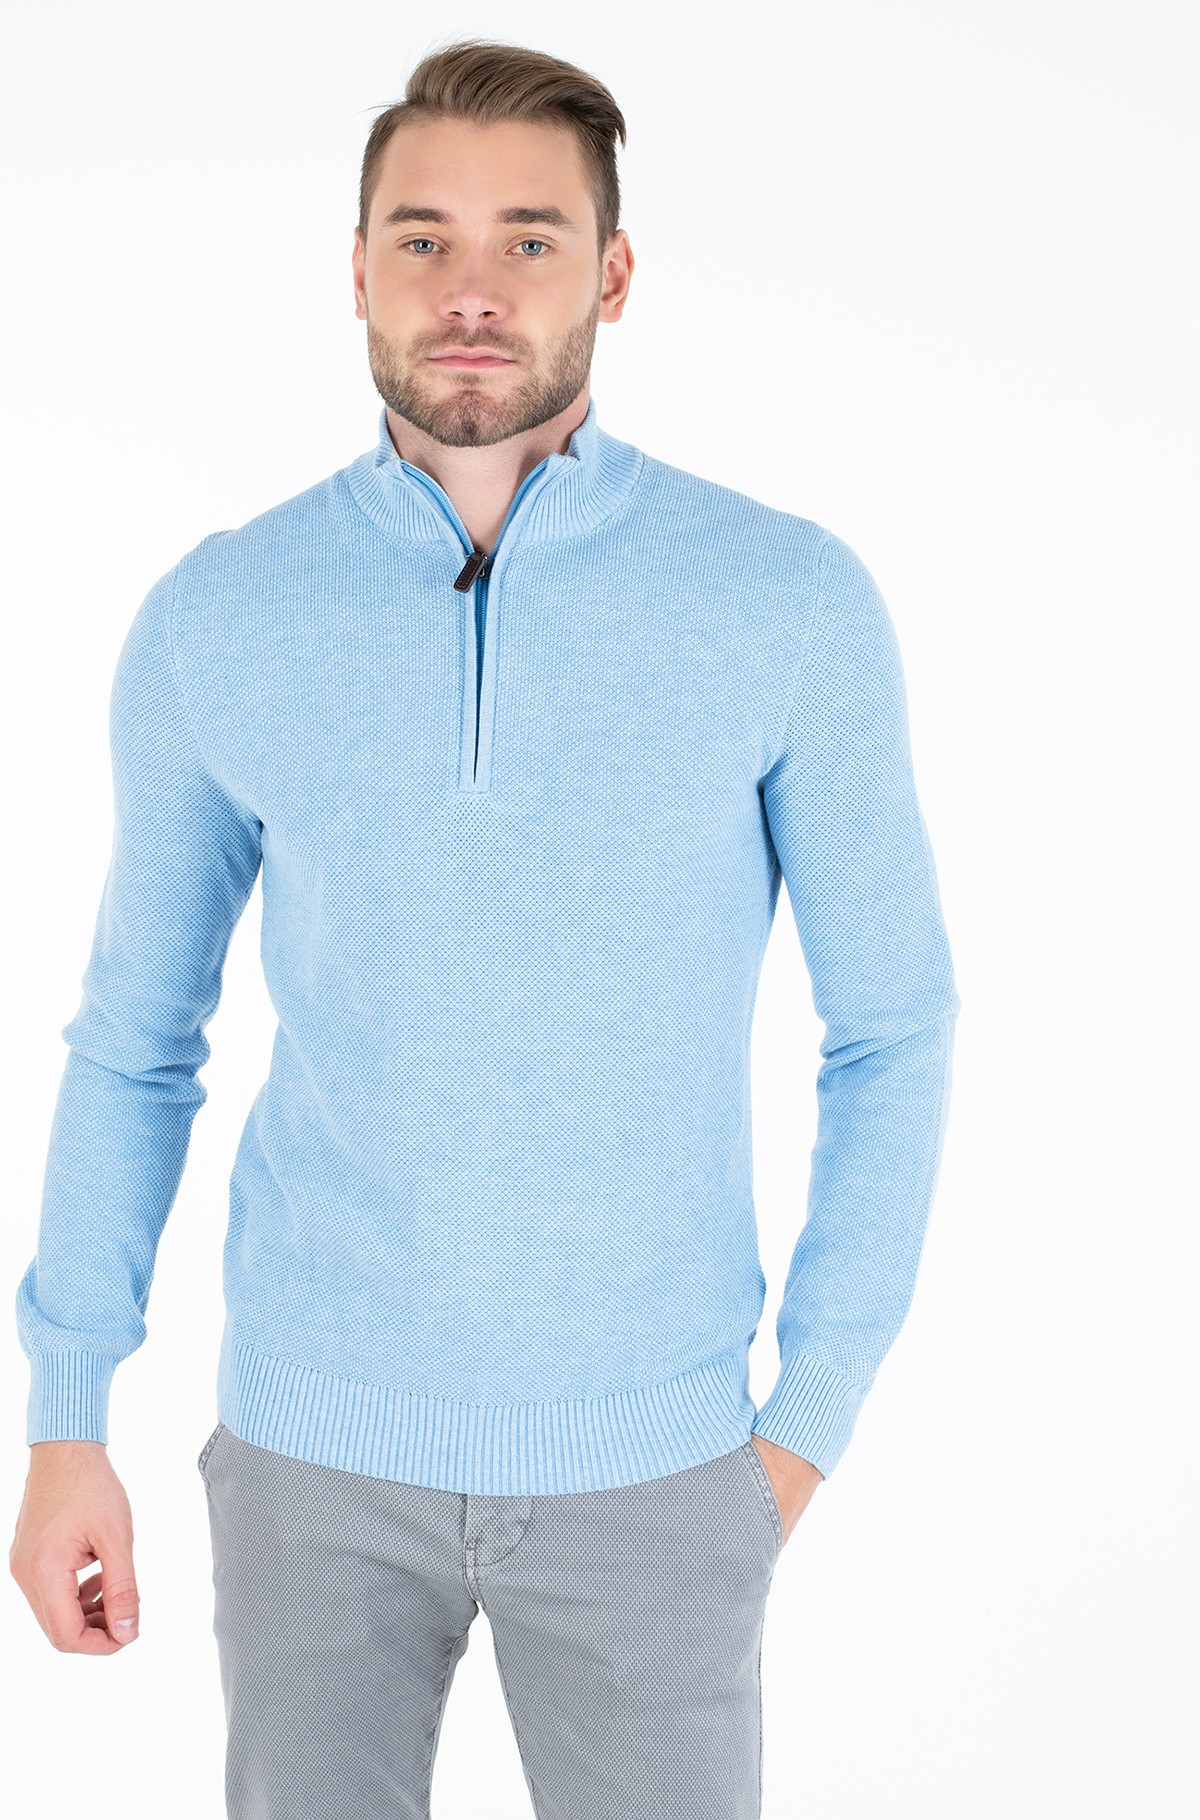 Sviiter 1/4 ZIP PIQUE SWEATER-full-1